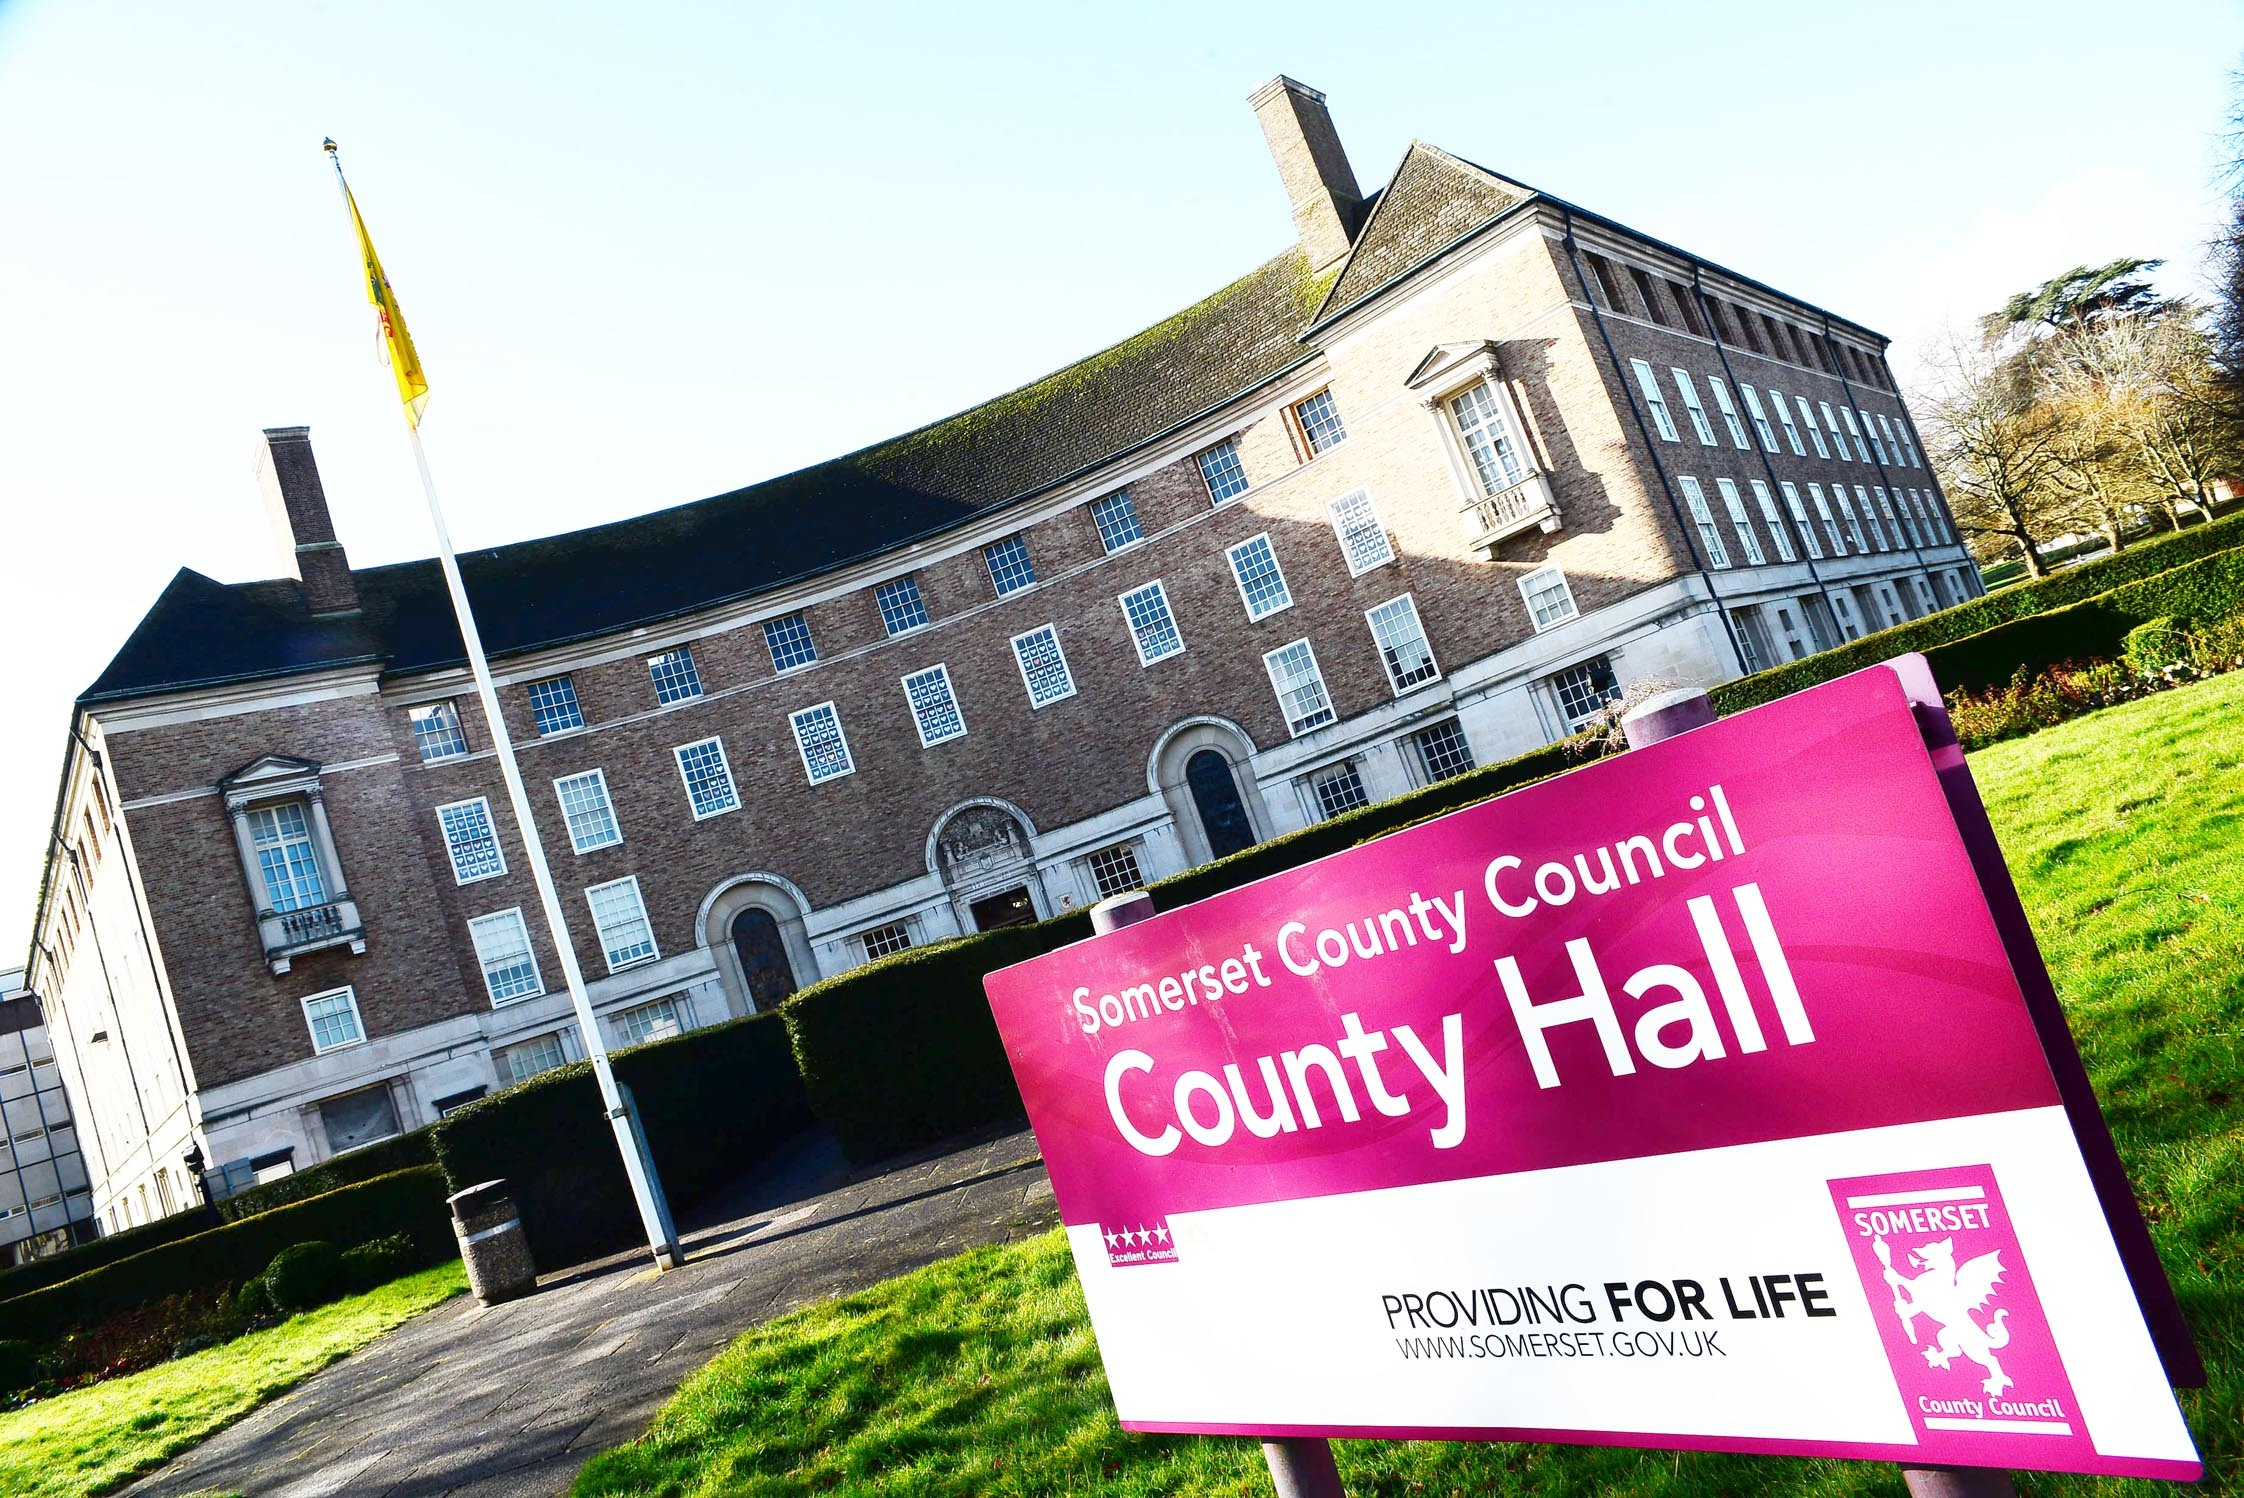 CASH-STRAPPED: Somerset County Council